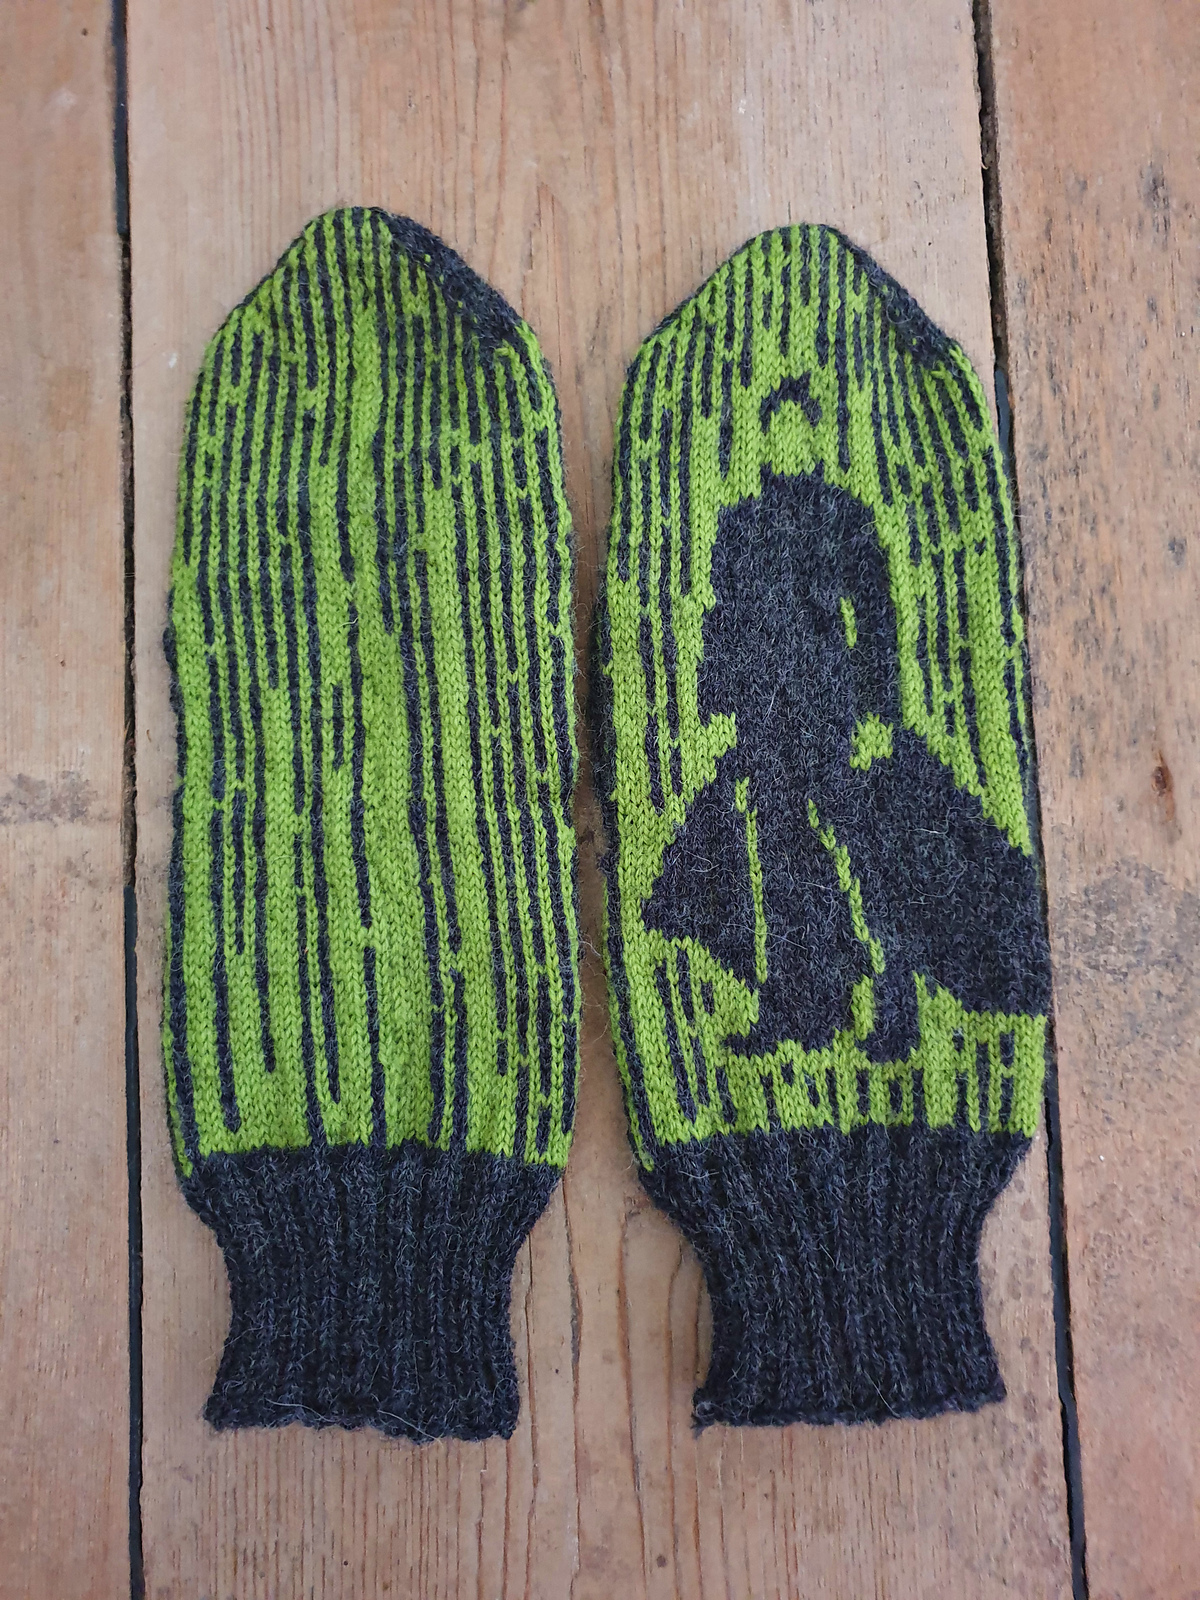 Knit a Pair of Matrix Mittens, Designed By Lotta Lundin, Features Neo!